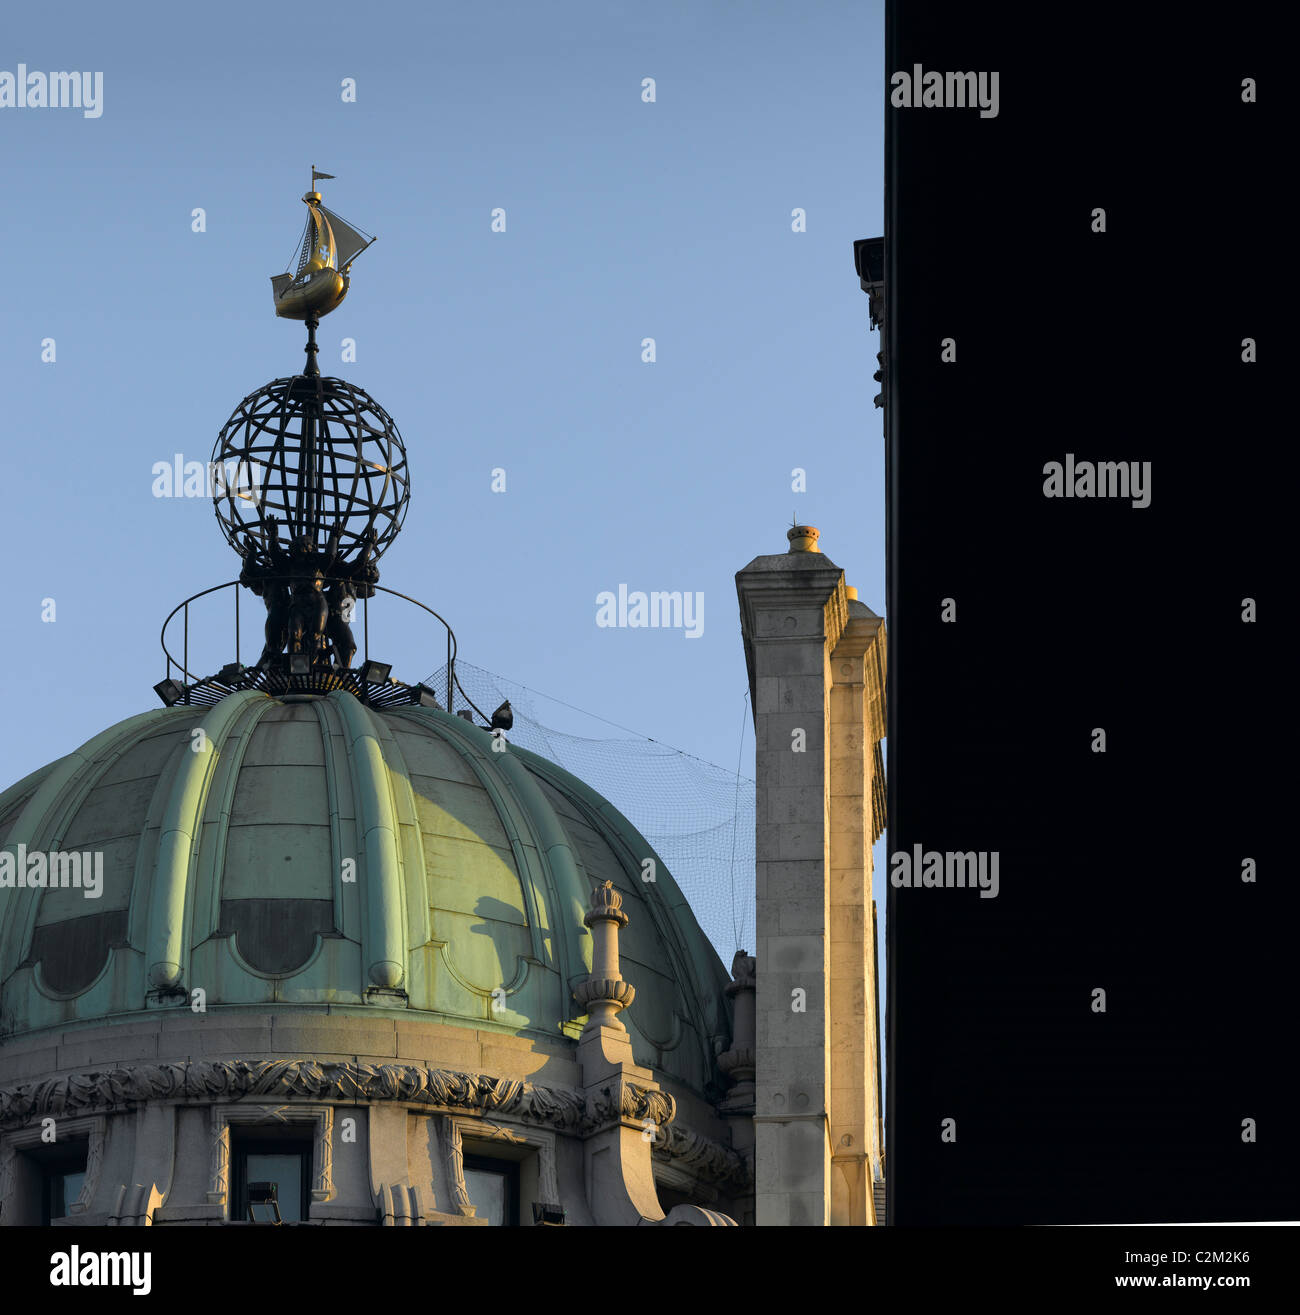 Globe and Ship on top of rotunda, Piccadilly, London. - Stock Image